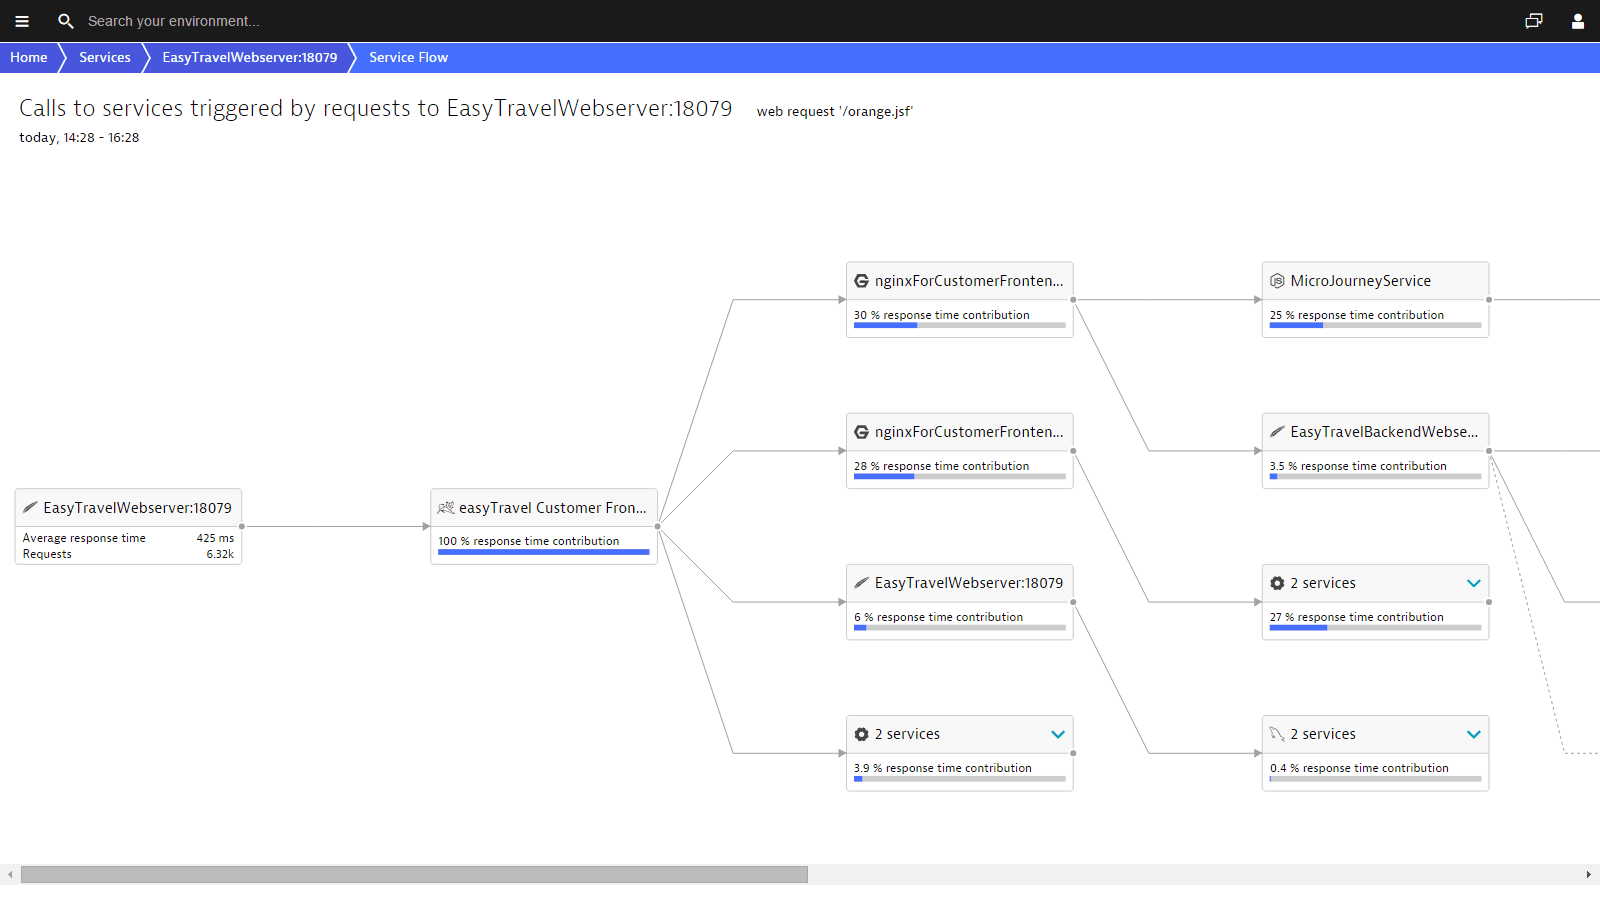 Dynatrace service flow visualizes Apache service requests end-to-end.